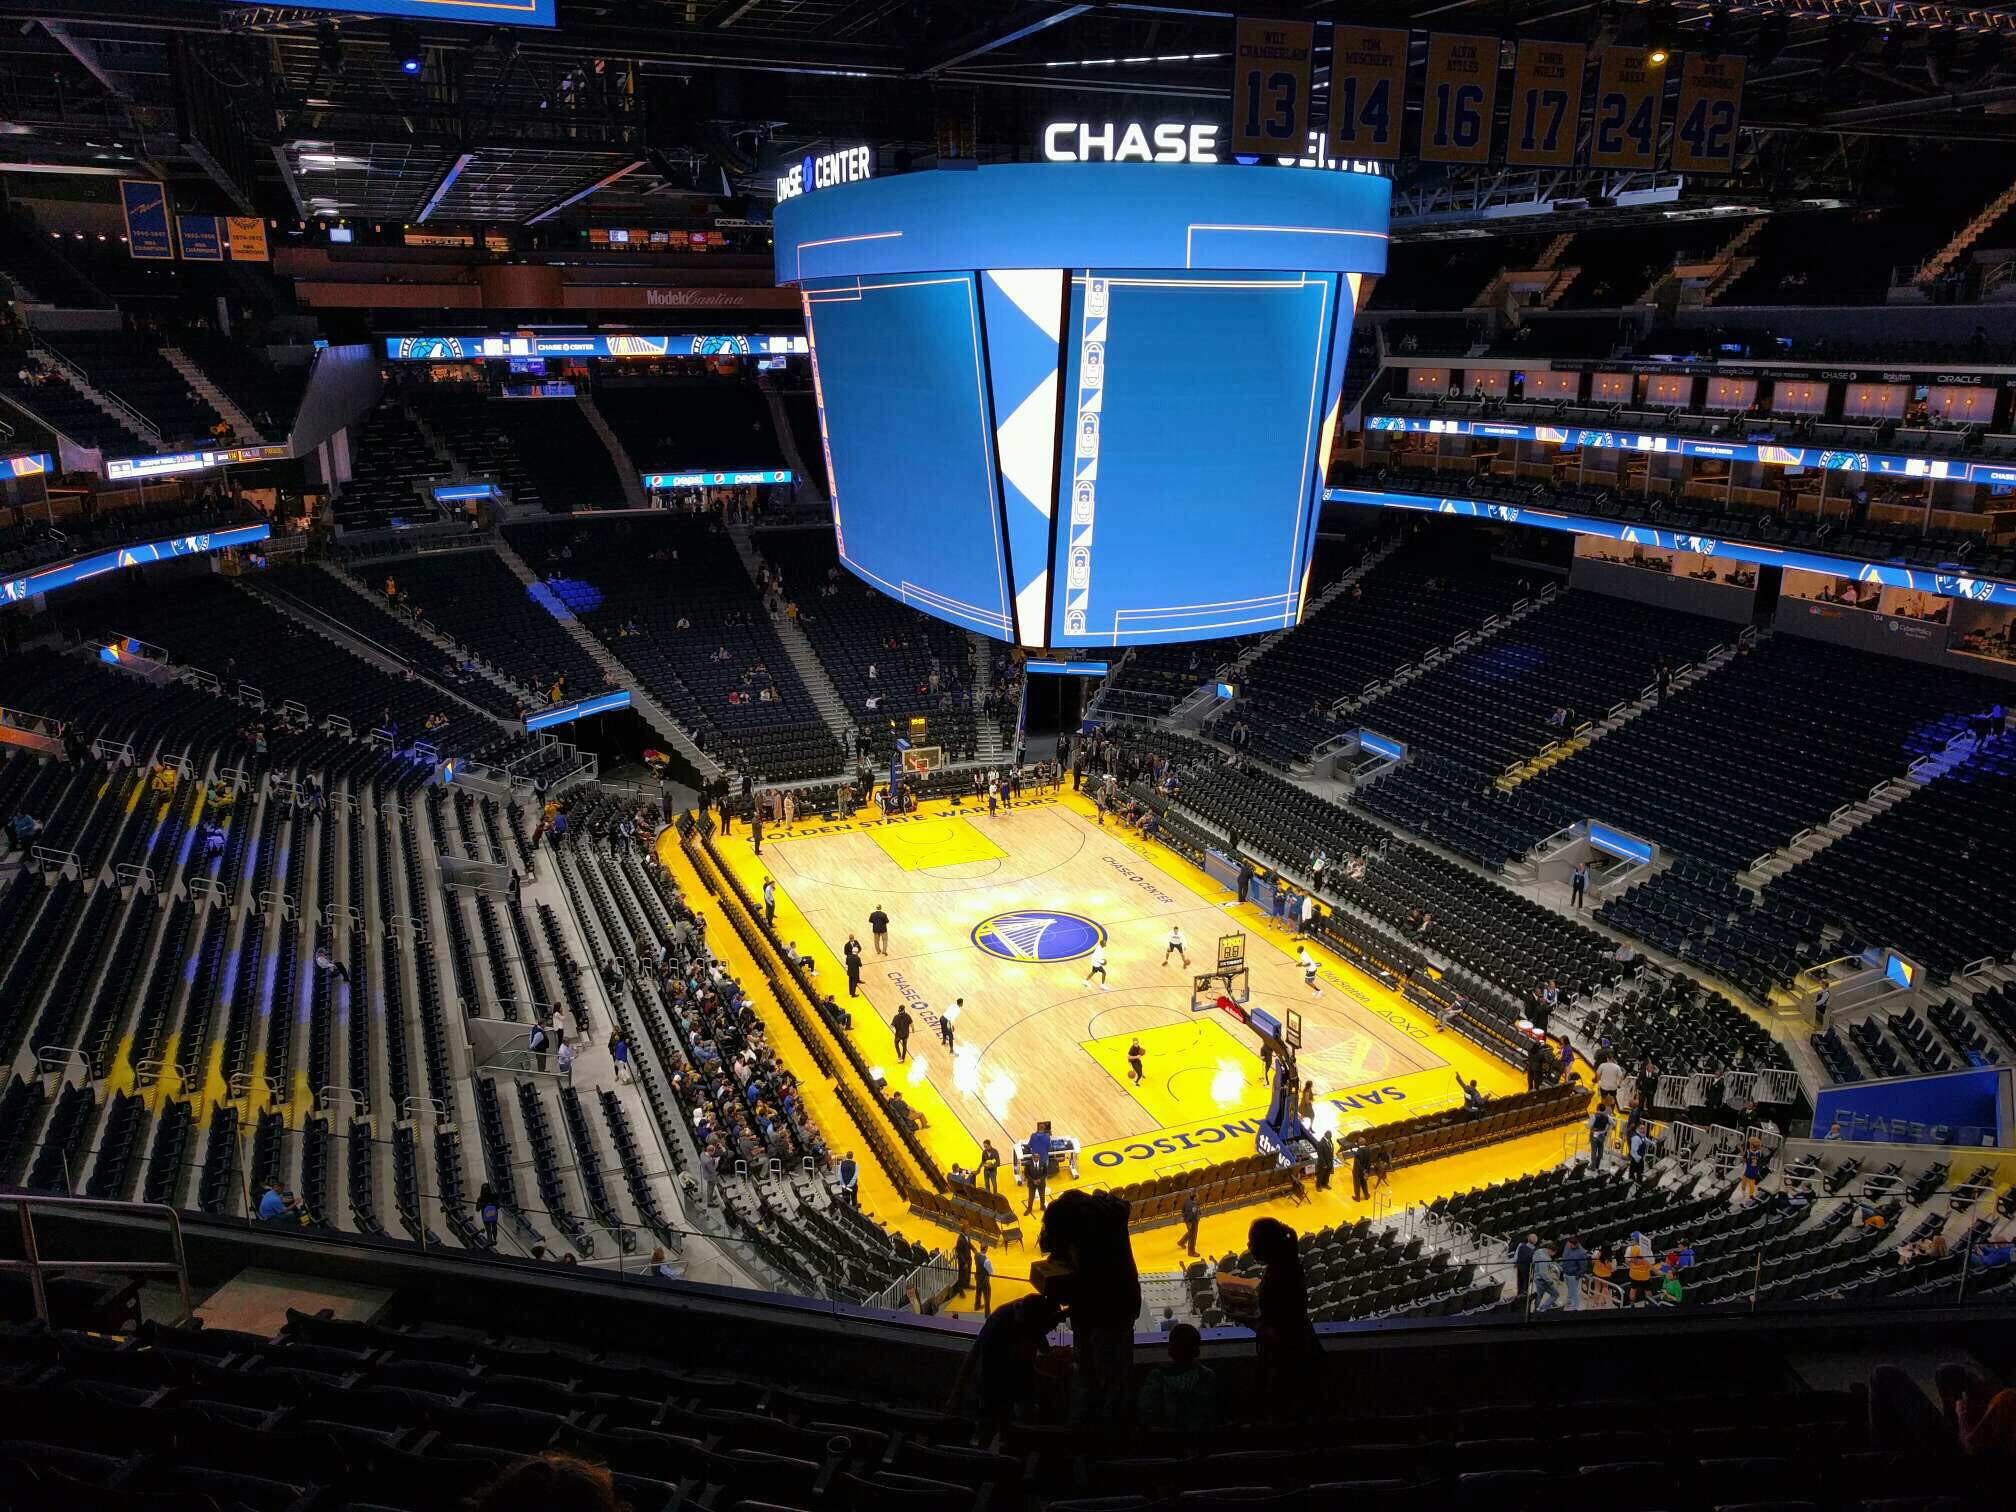 Chase Center Section 215 Row 9 Seat 10